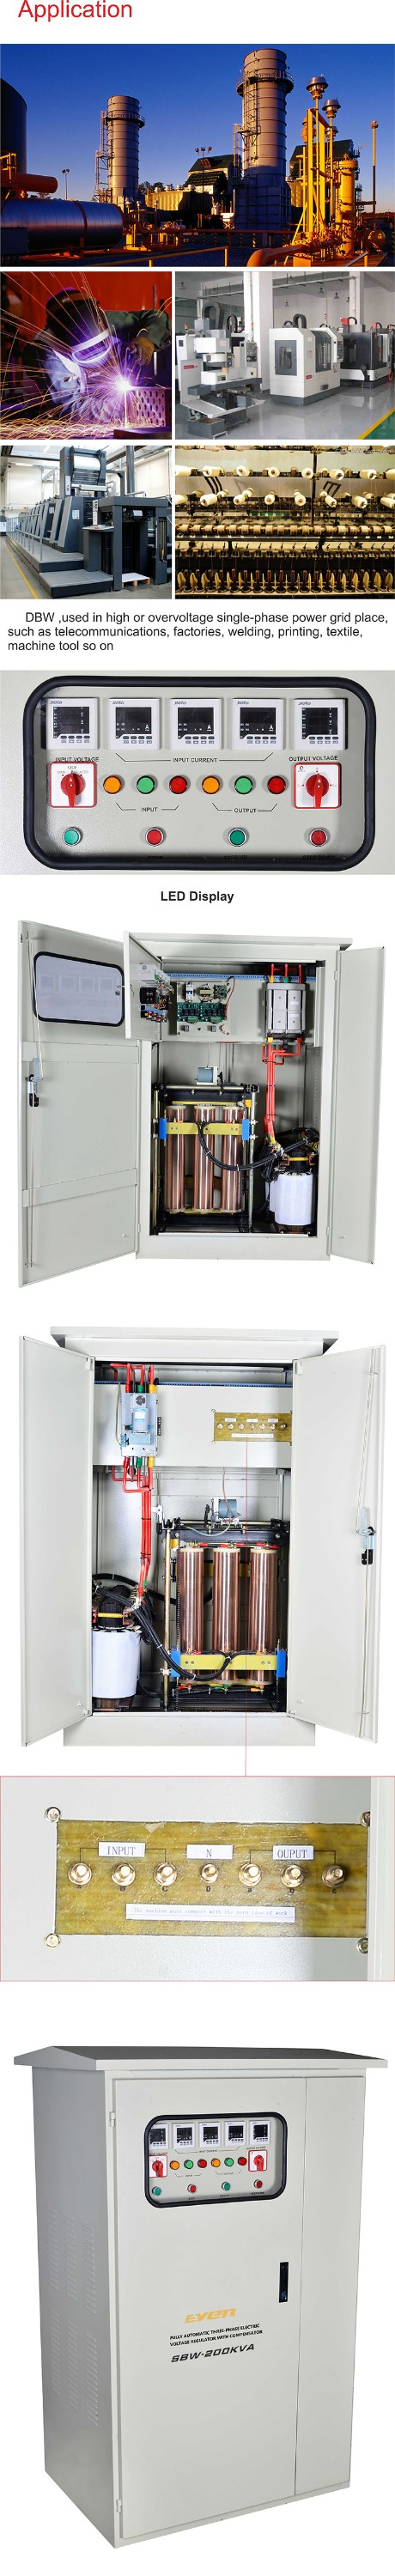 380V AC Stabilisateur de tension/Alimentation en courant alternatif/AVR régulateur de tension 800kva